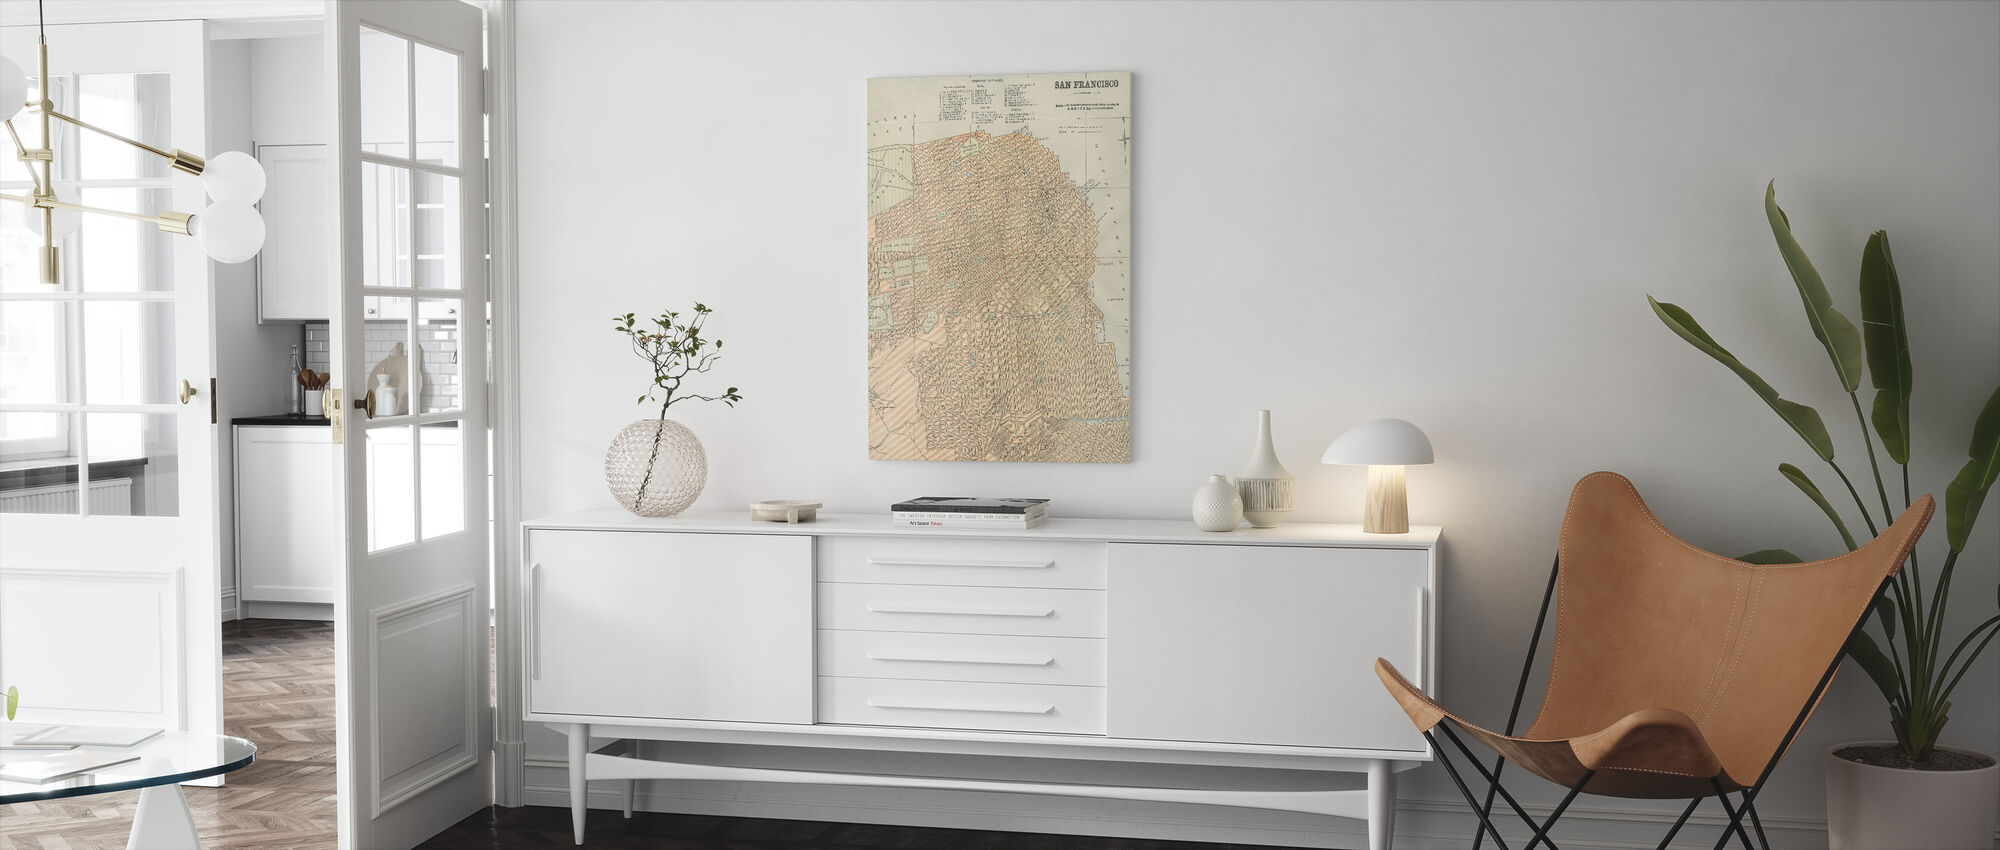 San Francisco Map - Canvas print - Living Room